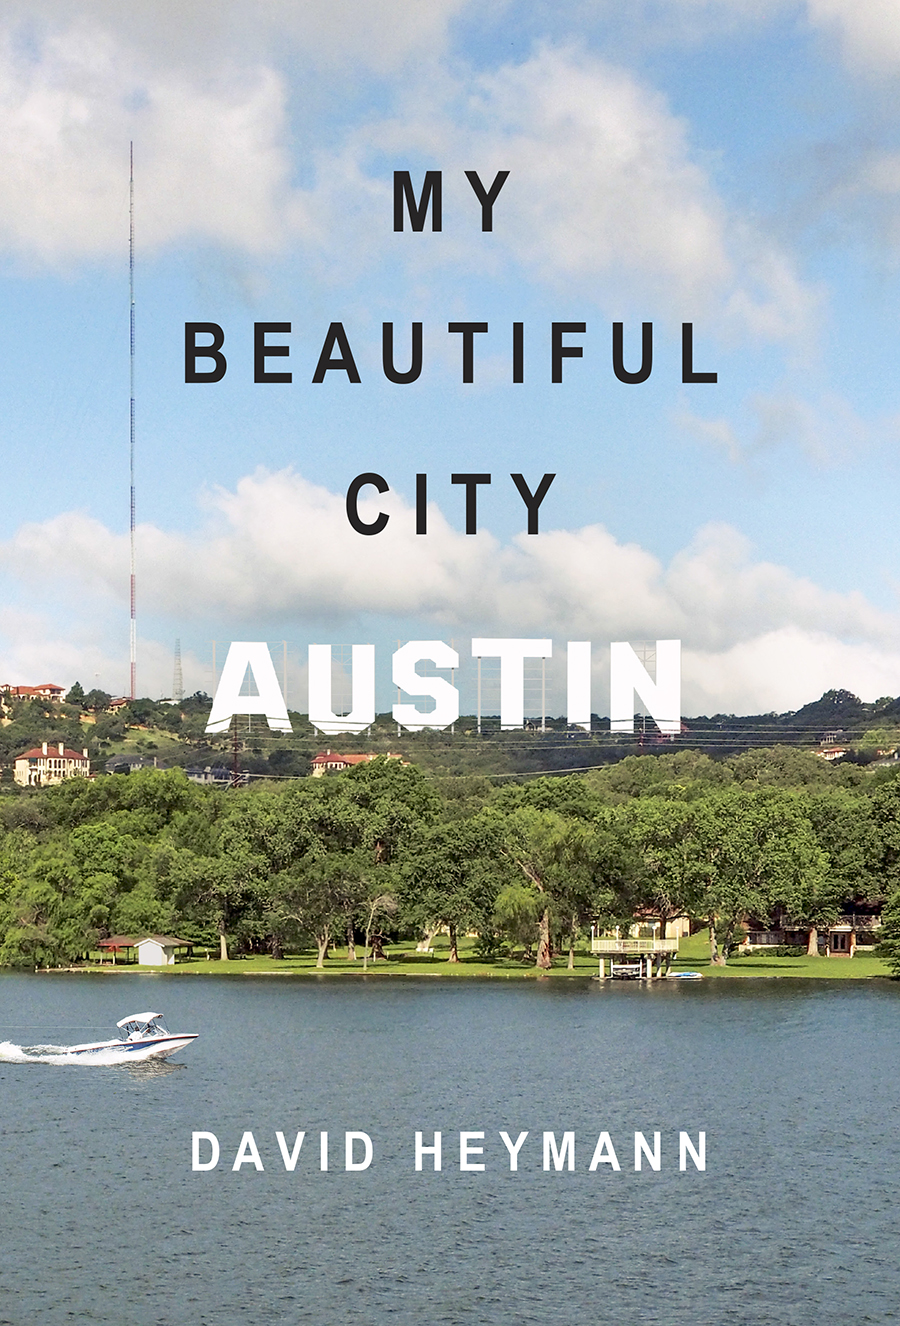 My Beautiful City Austin cover